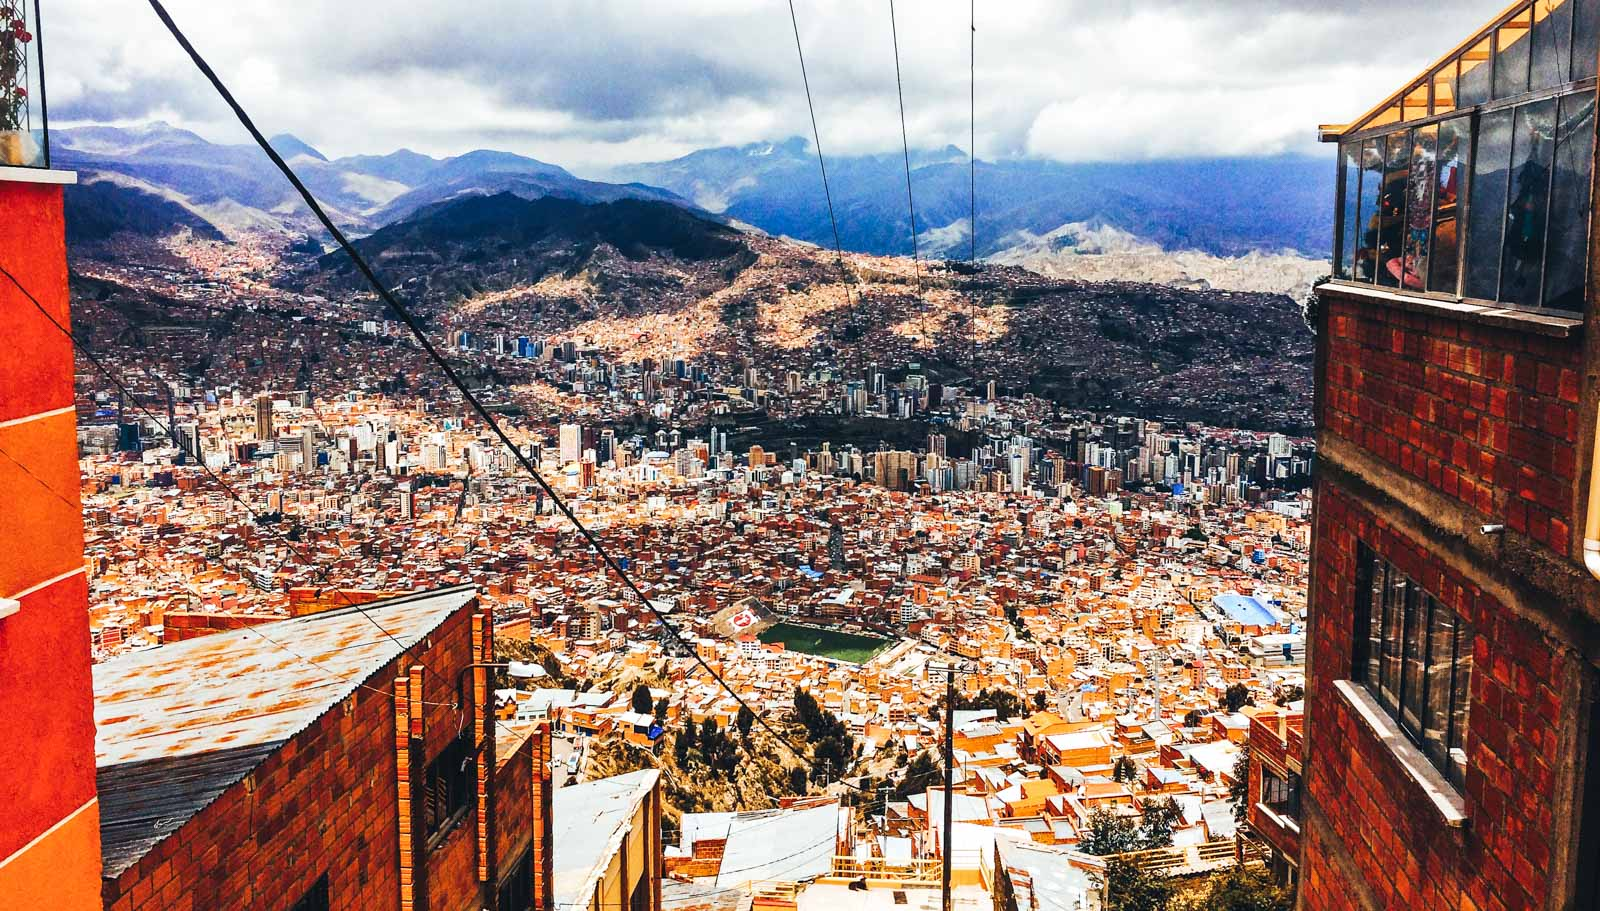 Advice on what to prepare for backpacking La Paz. The view from the very top of the teleferico looking over La Paz